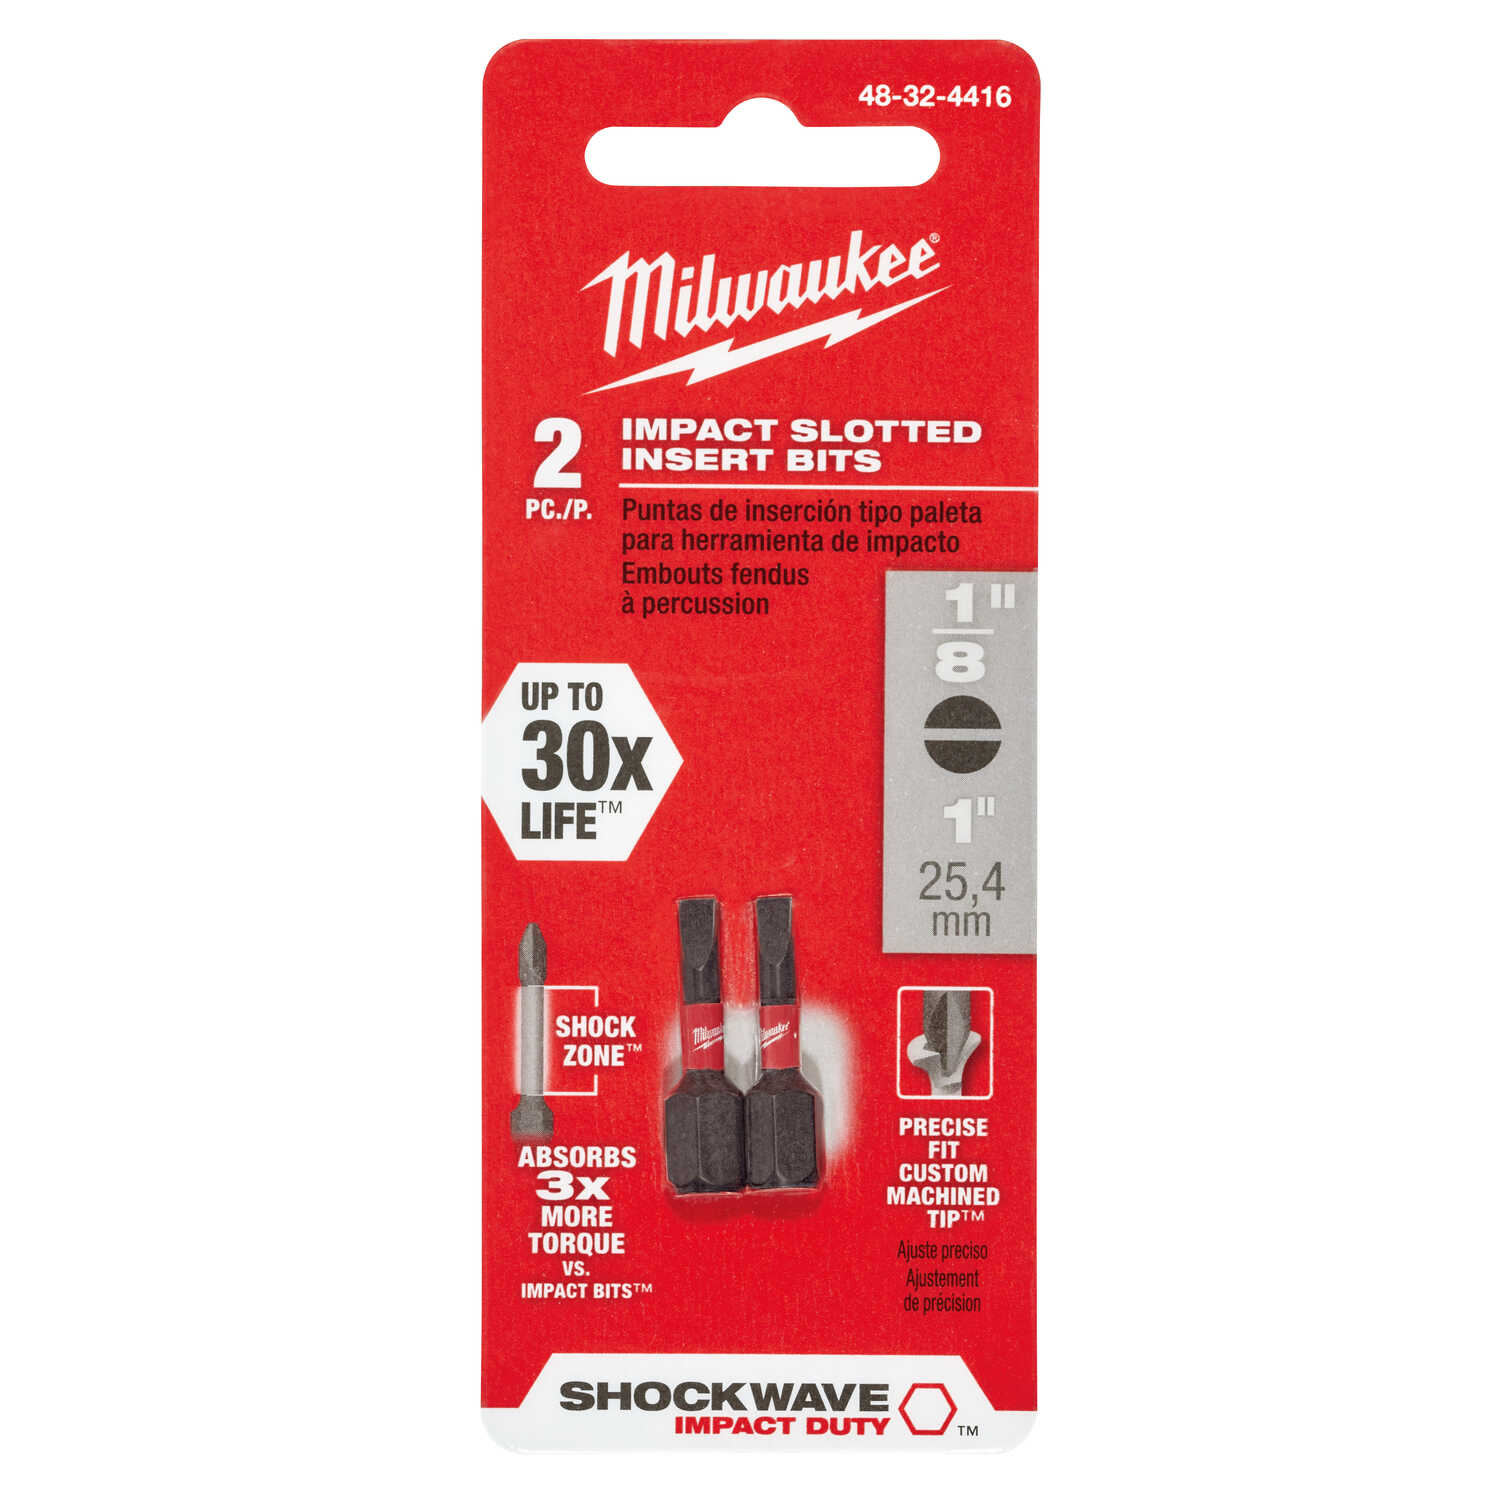 Milwaukee  SHOCKWAVE  1/8 in.  x 1 in. L Insert Bit  1/4 in. Hex Shank  2 pc. Slotted  Impact Duty